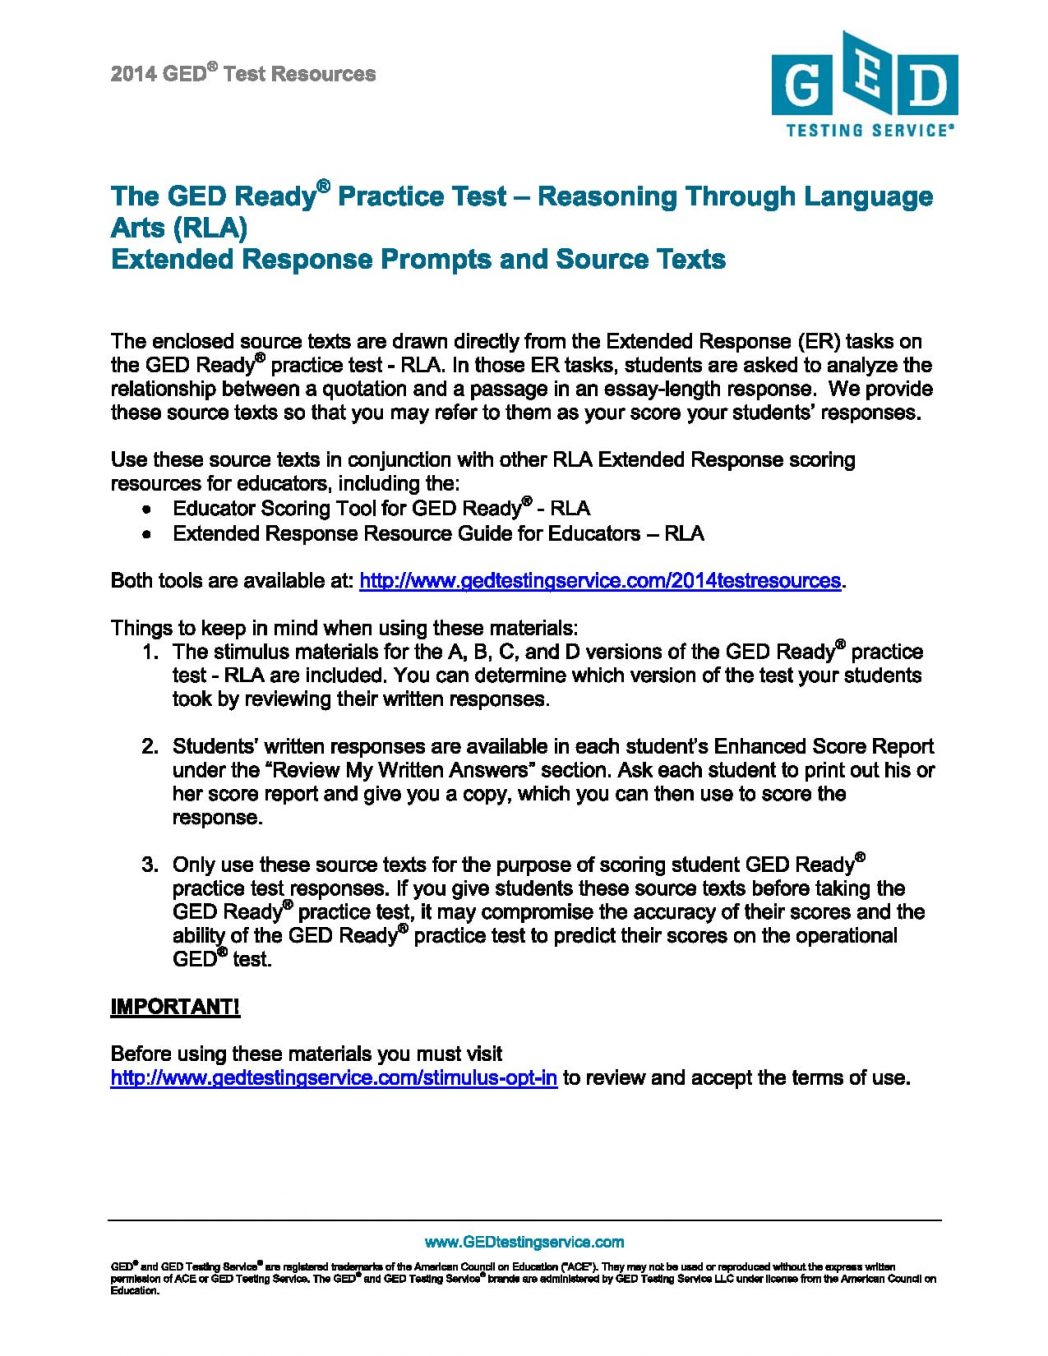 004 Sample Ged Essays With Scores Essay Example Online Practice Coursework Writing Service Eqpapernskq Template Ready Extended Res In Spanish Youtube Tips Rubric Topics Samples Lesson Rare Pdf Full